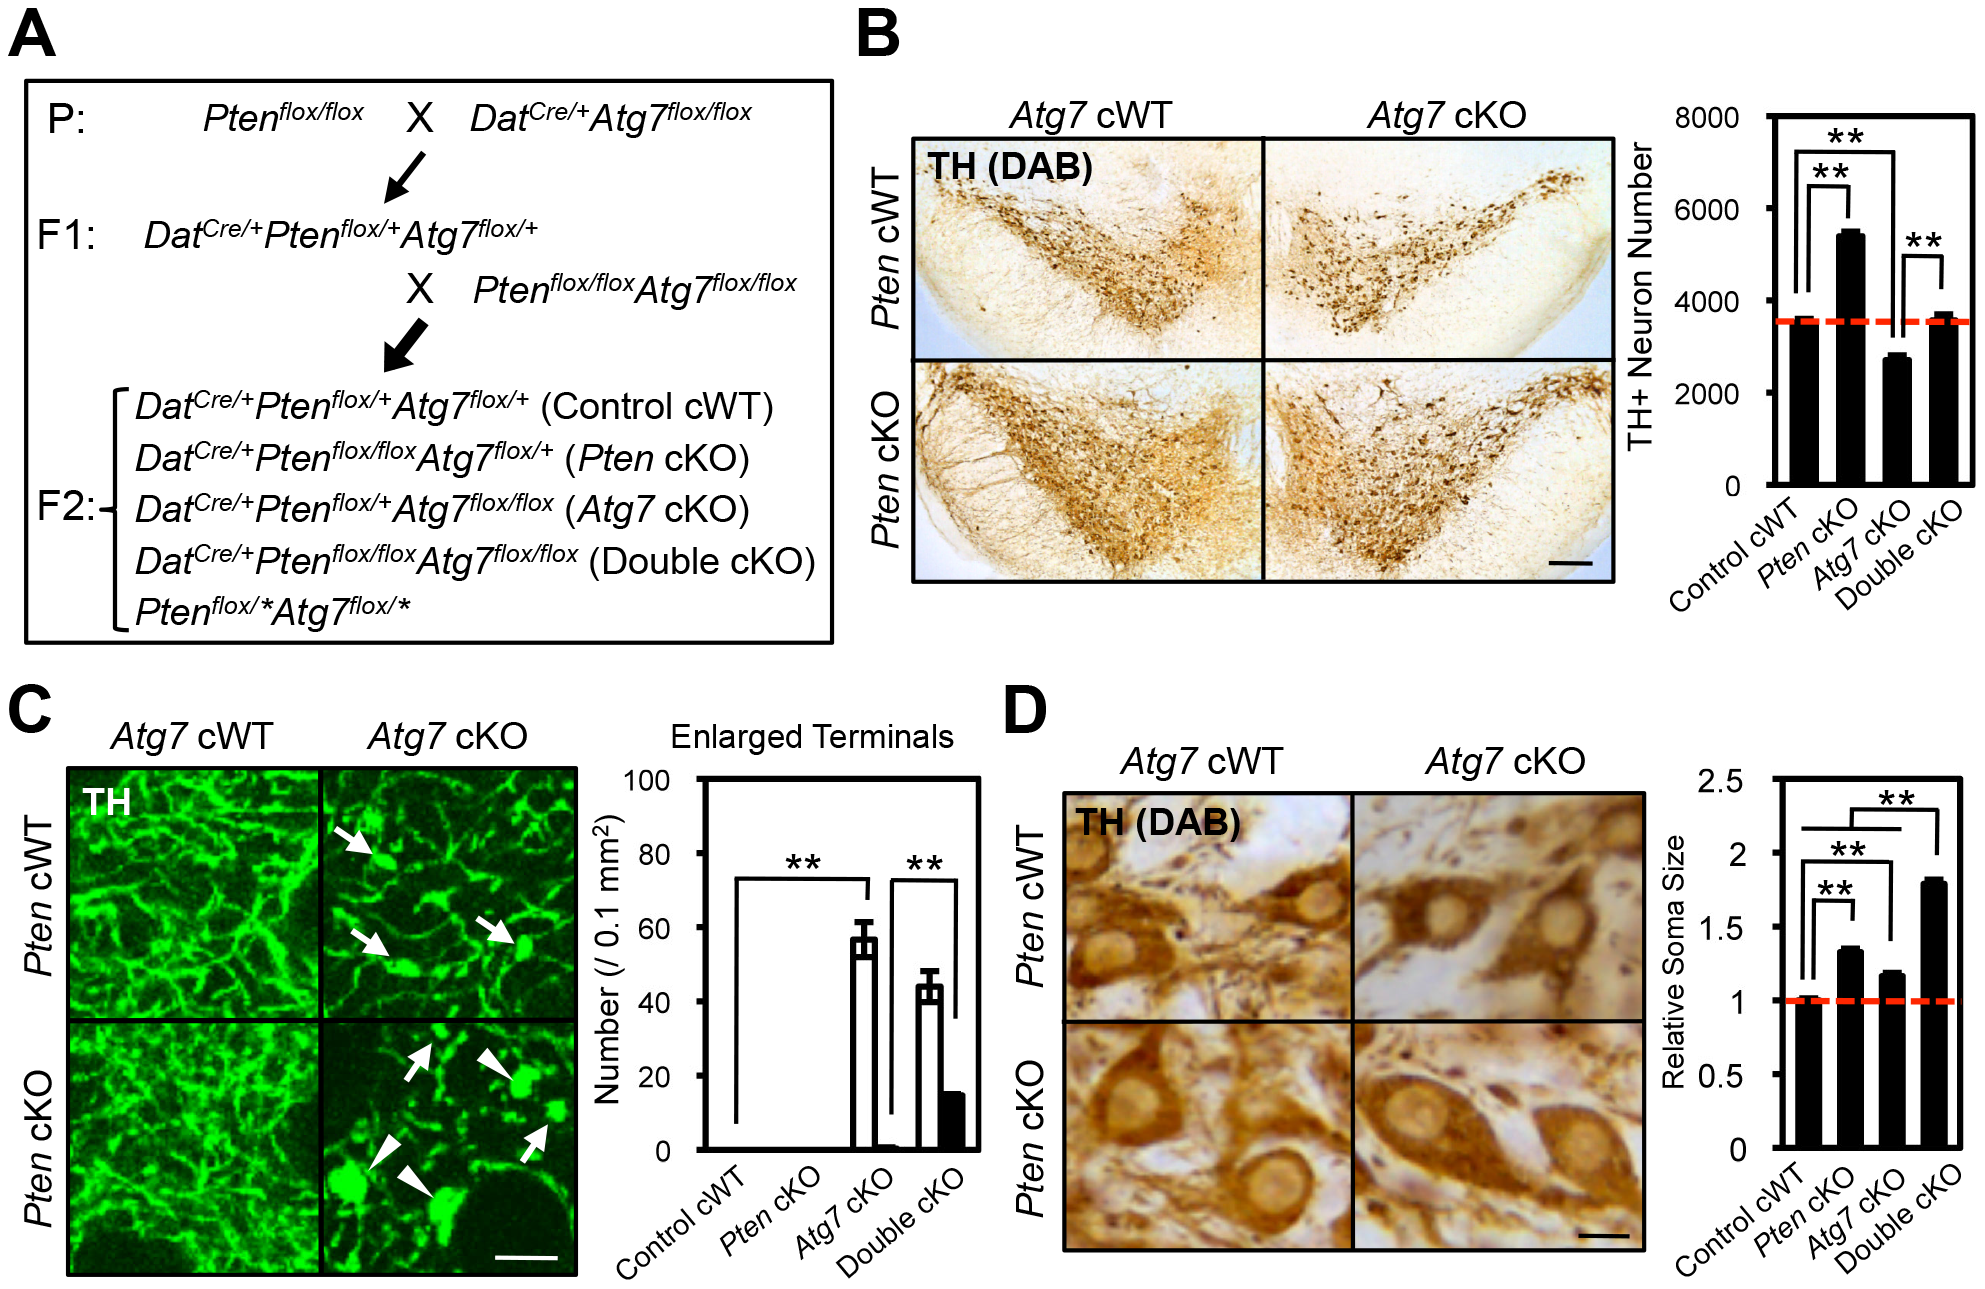 Atg7 and Pten double deficiency synergistically increases axon terminal size in midbrain DA neurons.